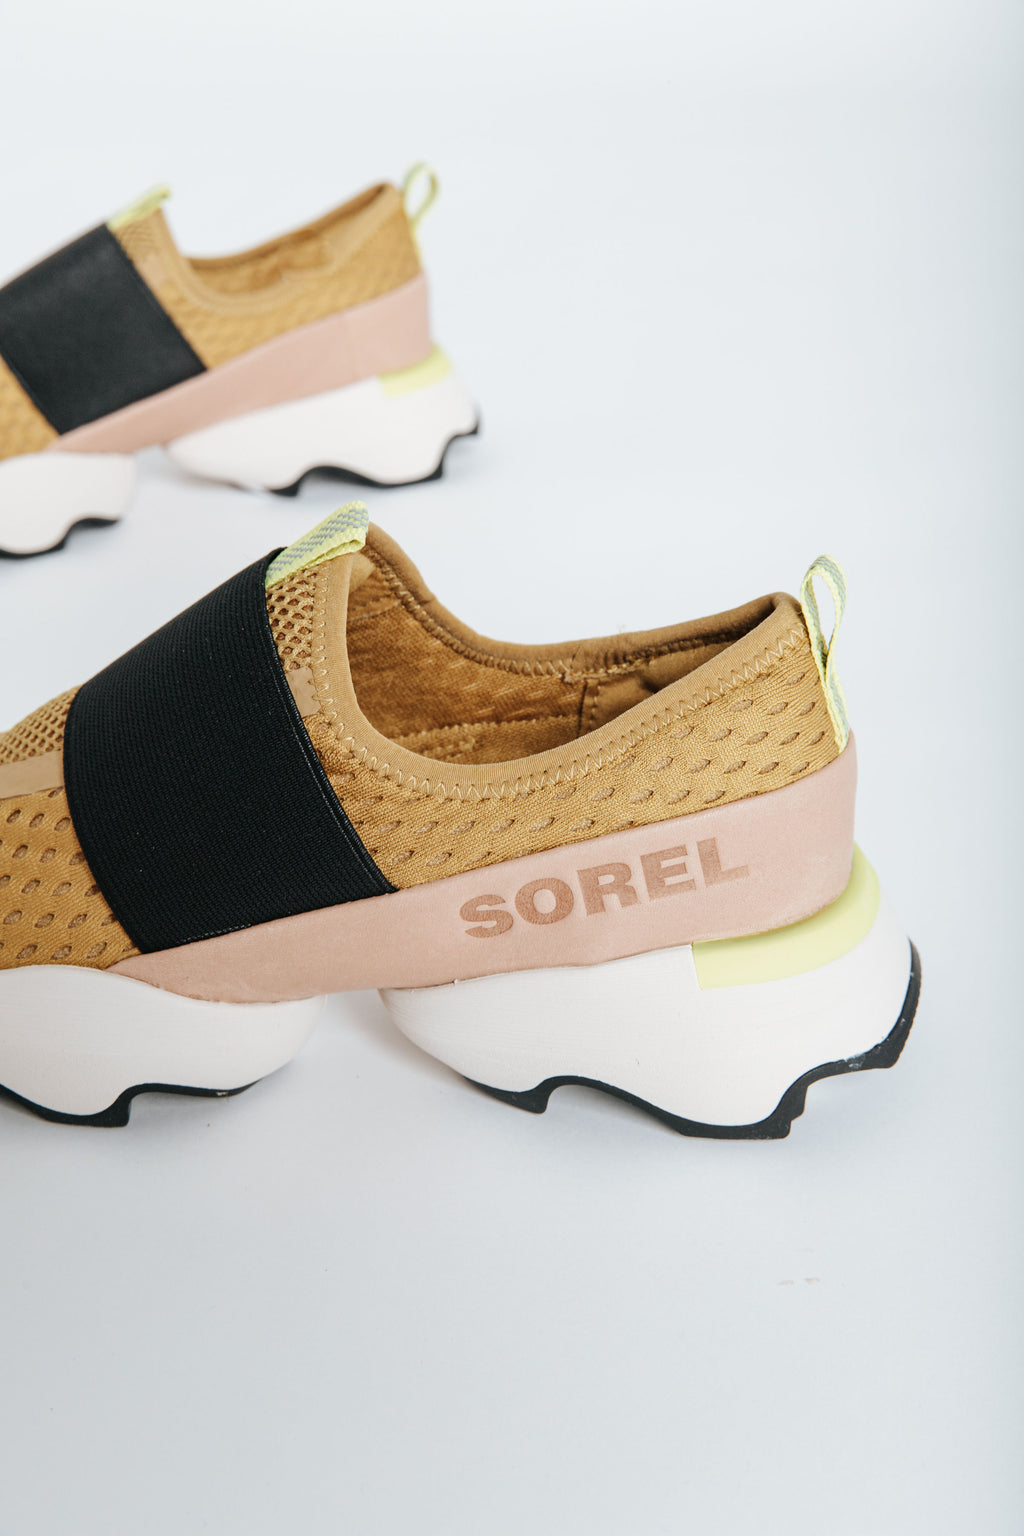 Sorel: Womens Kinetic™ Impact Strap Sneaker in Gold, studio shoot, side view